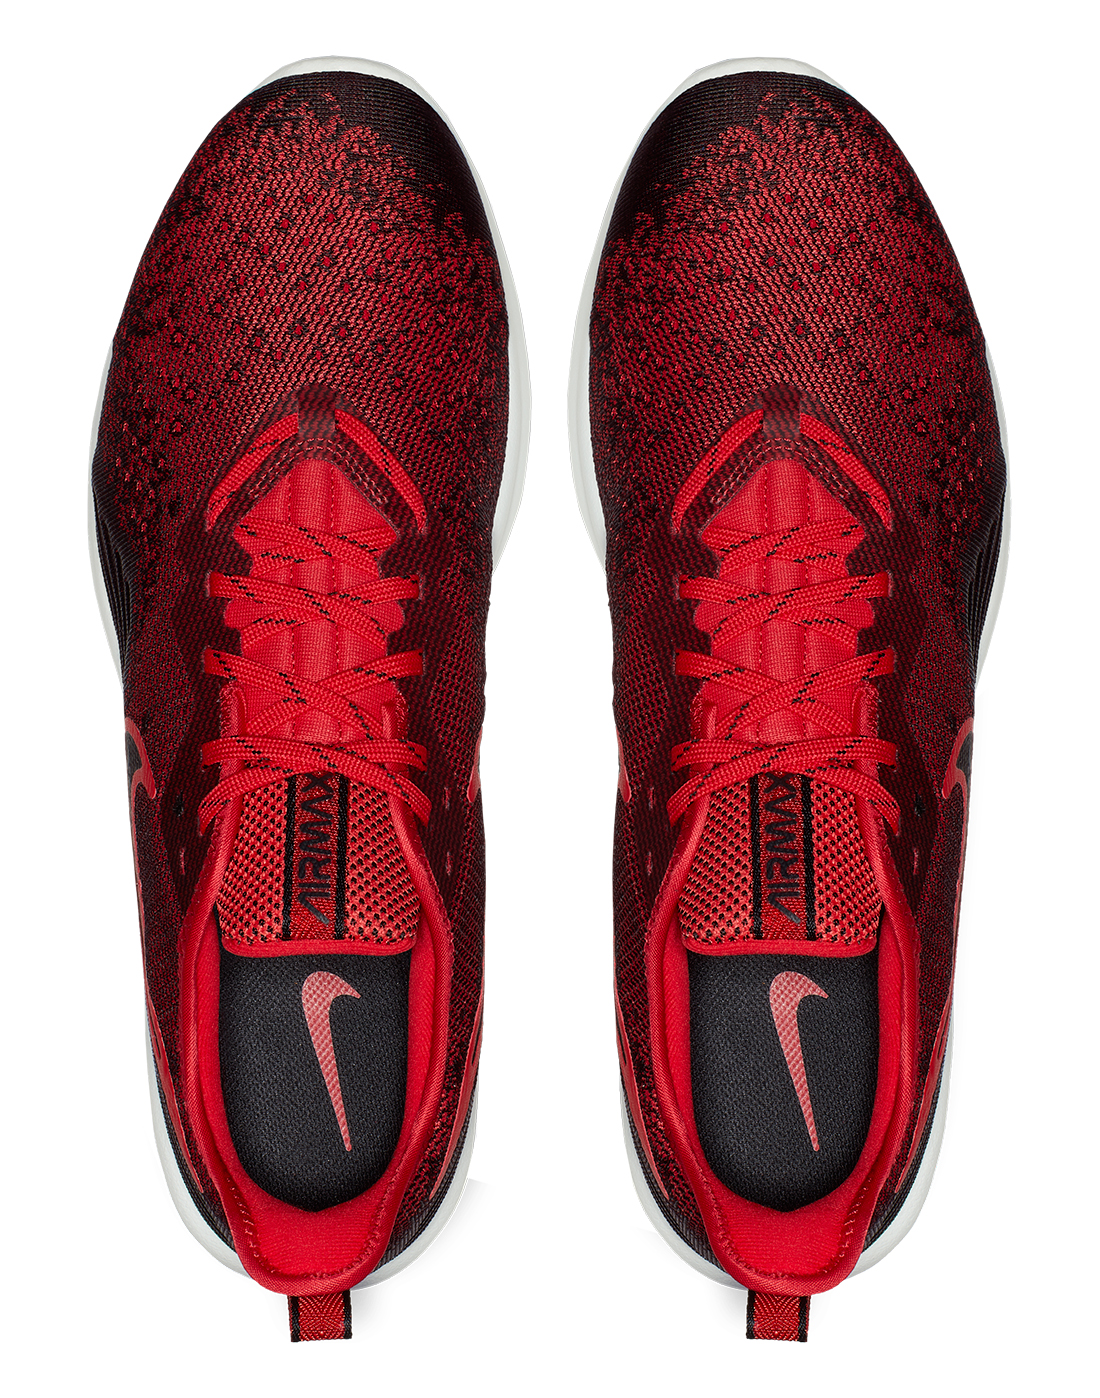 462f4277a740 Men s Red Nike Air Max Sequent 4